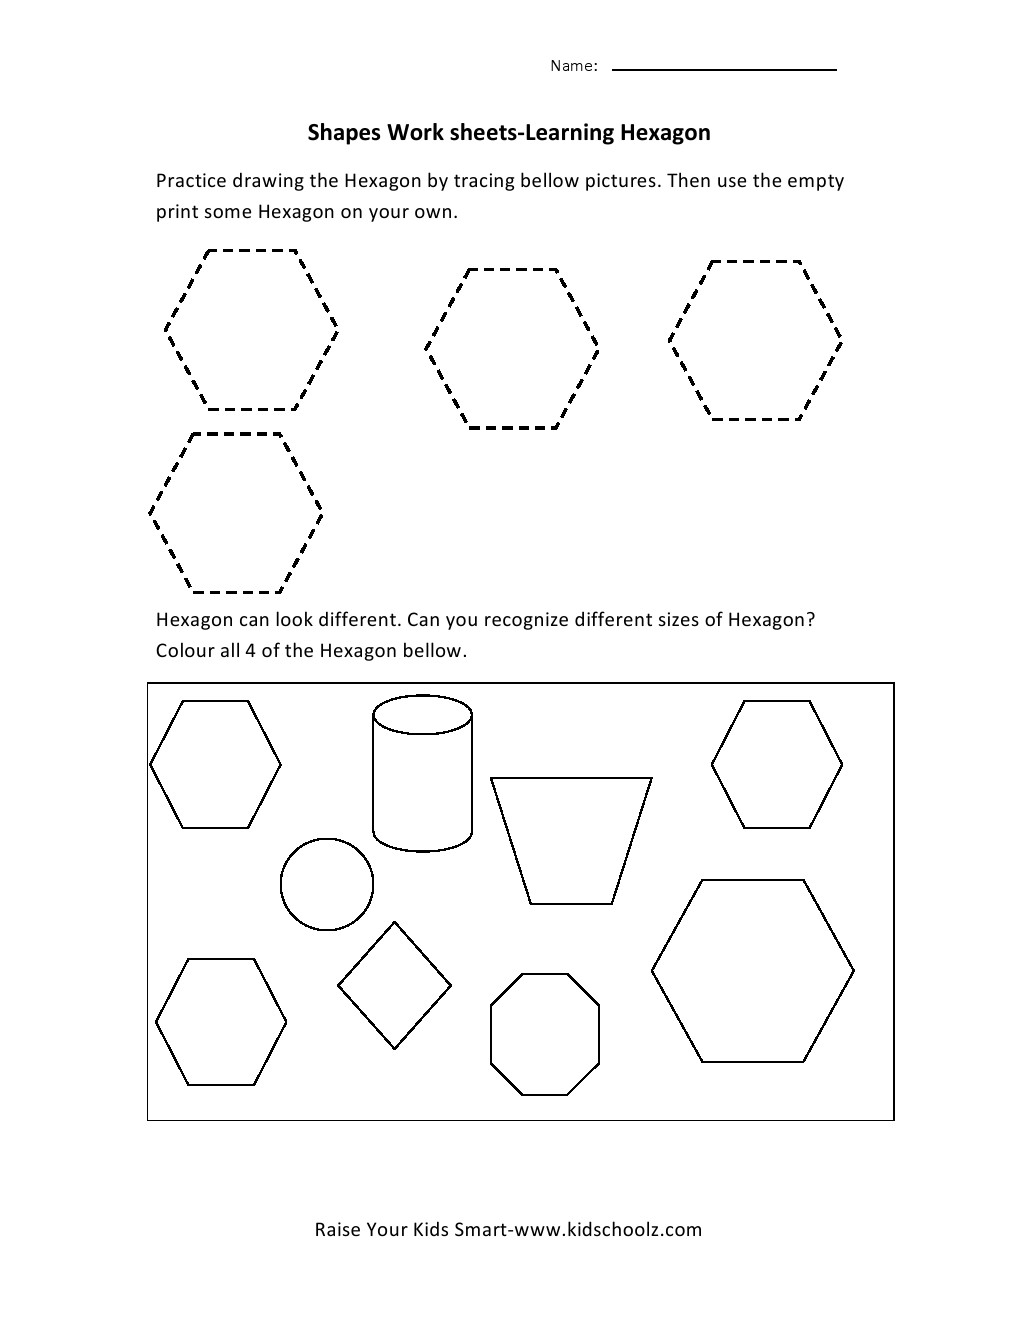 Worksheet Hexagon Worksheet learning shapes worksheets hexagon hexagon